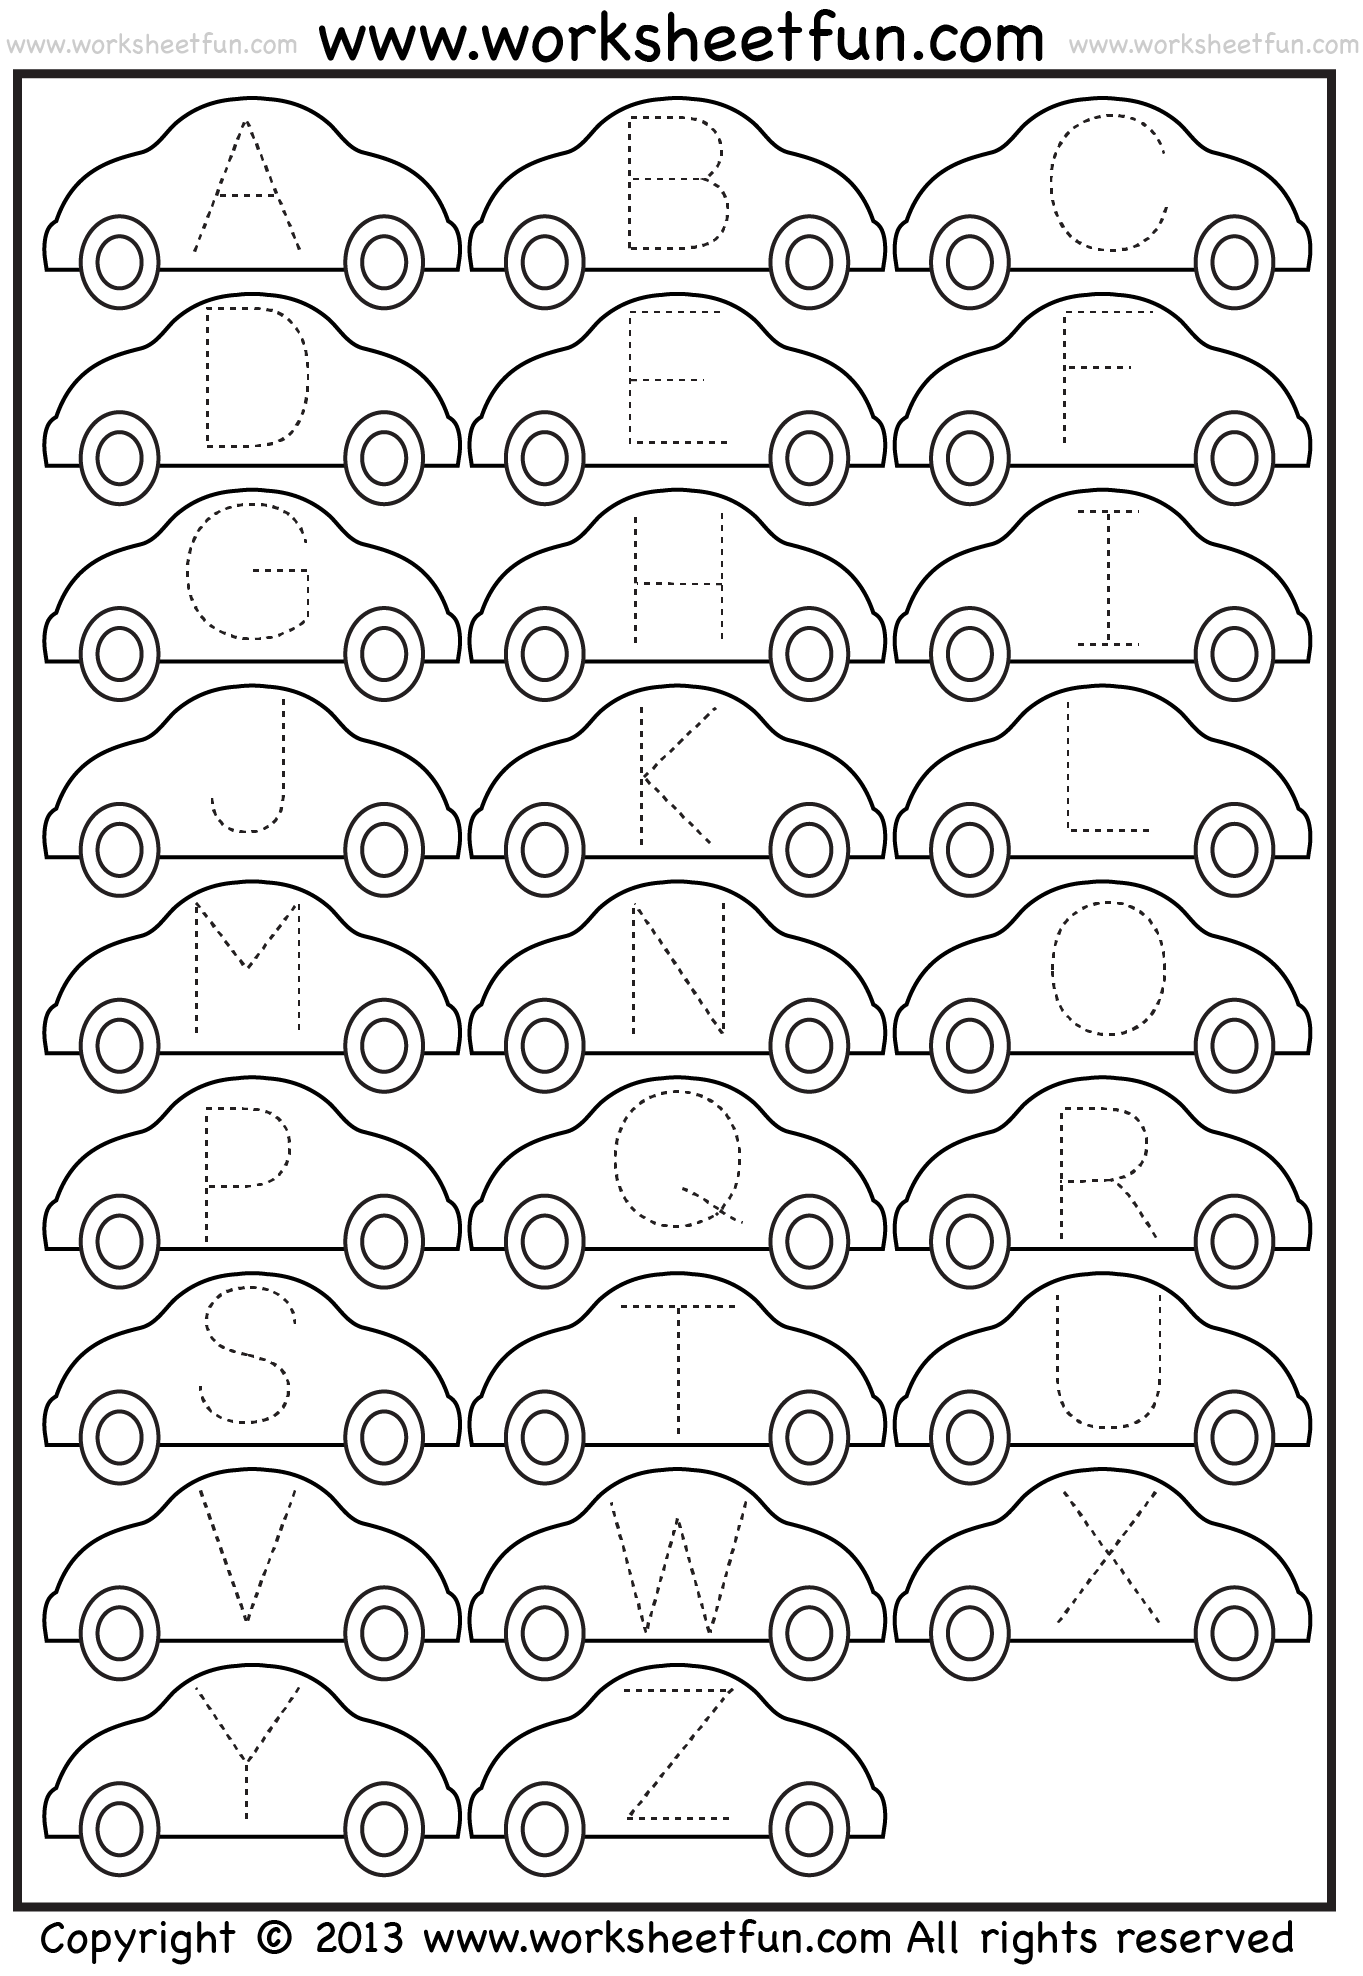 worksheet Alphabet Worksheet tracing letter free printable worksheets worksheetfun worksheet car